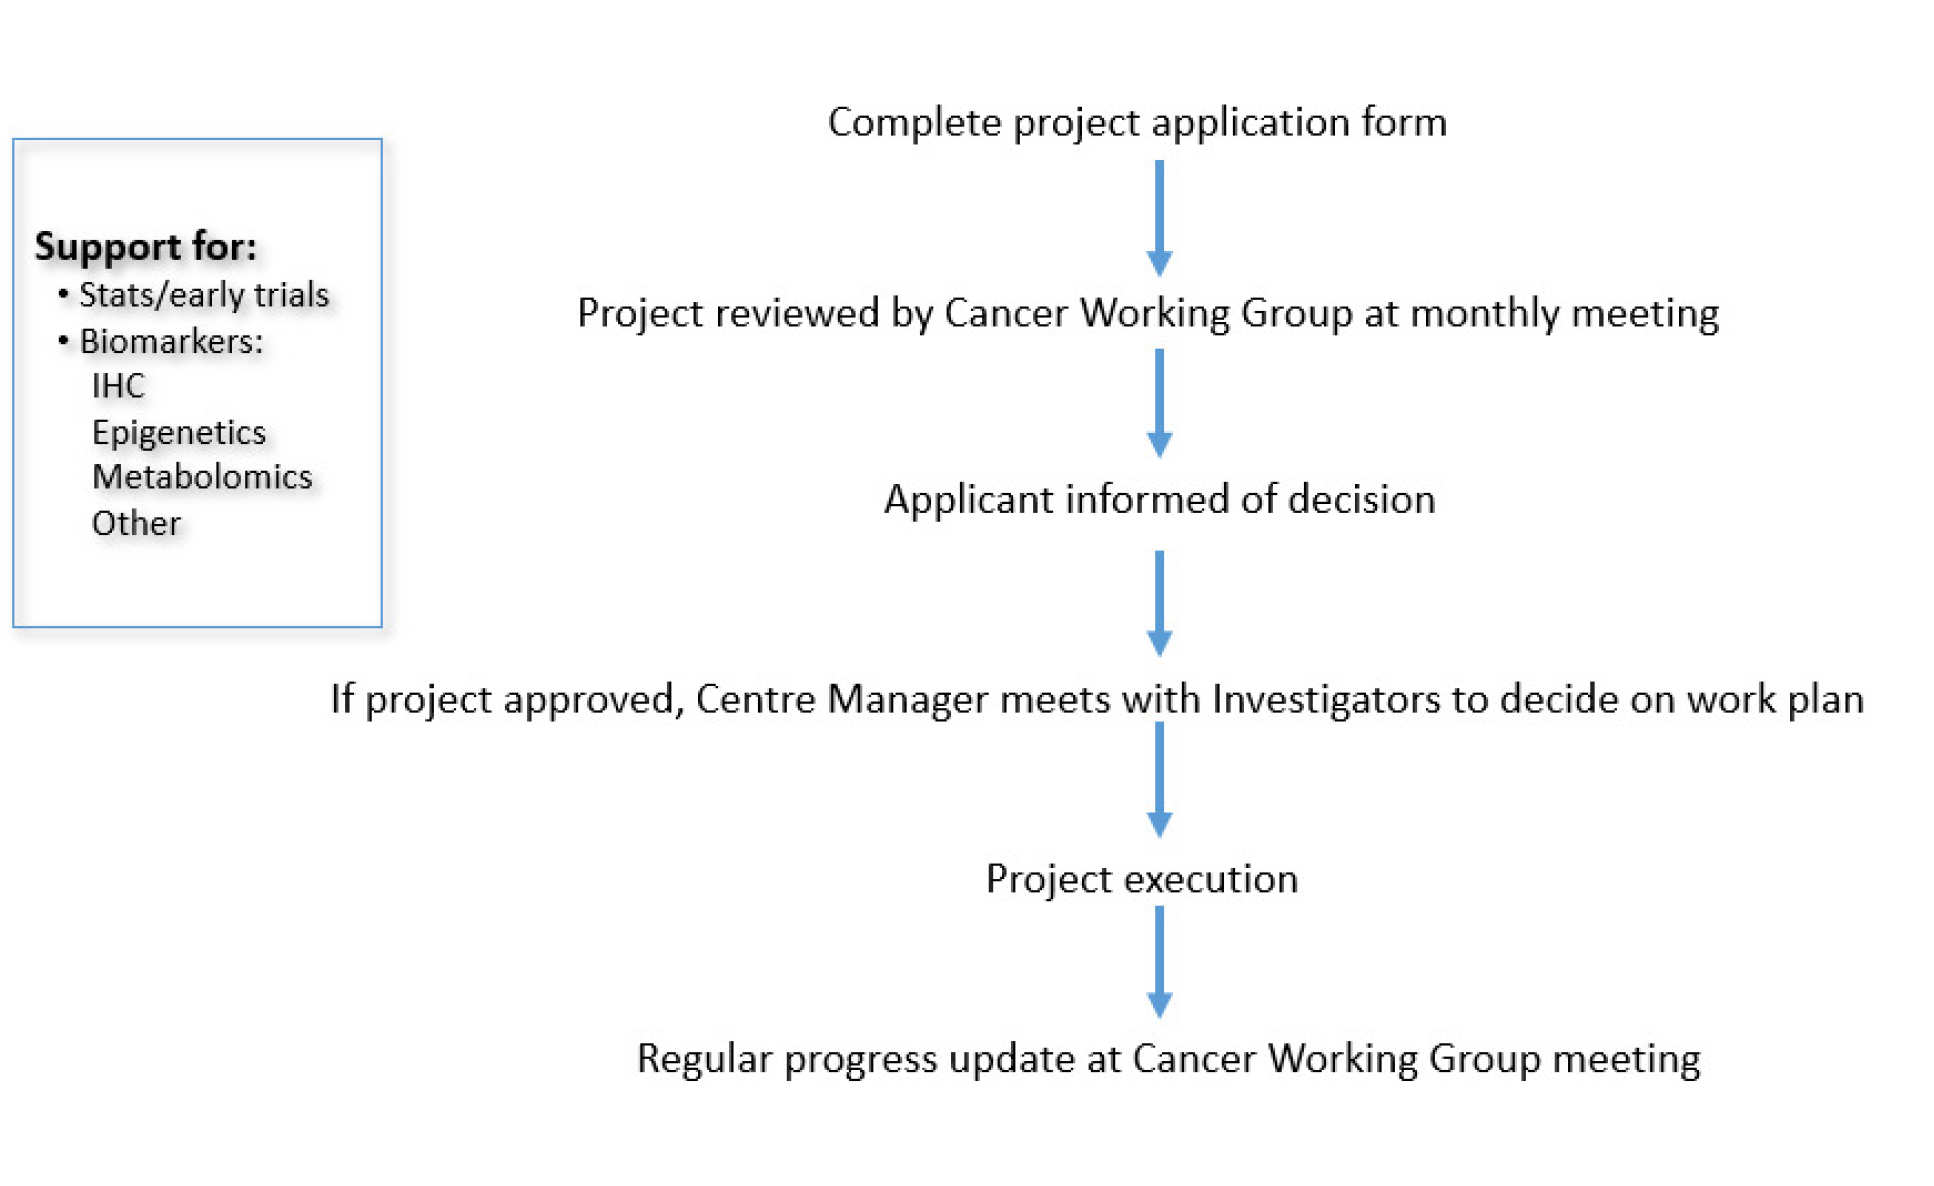 Research support application process